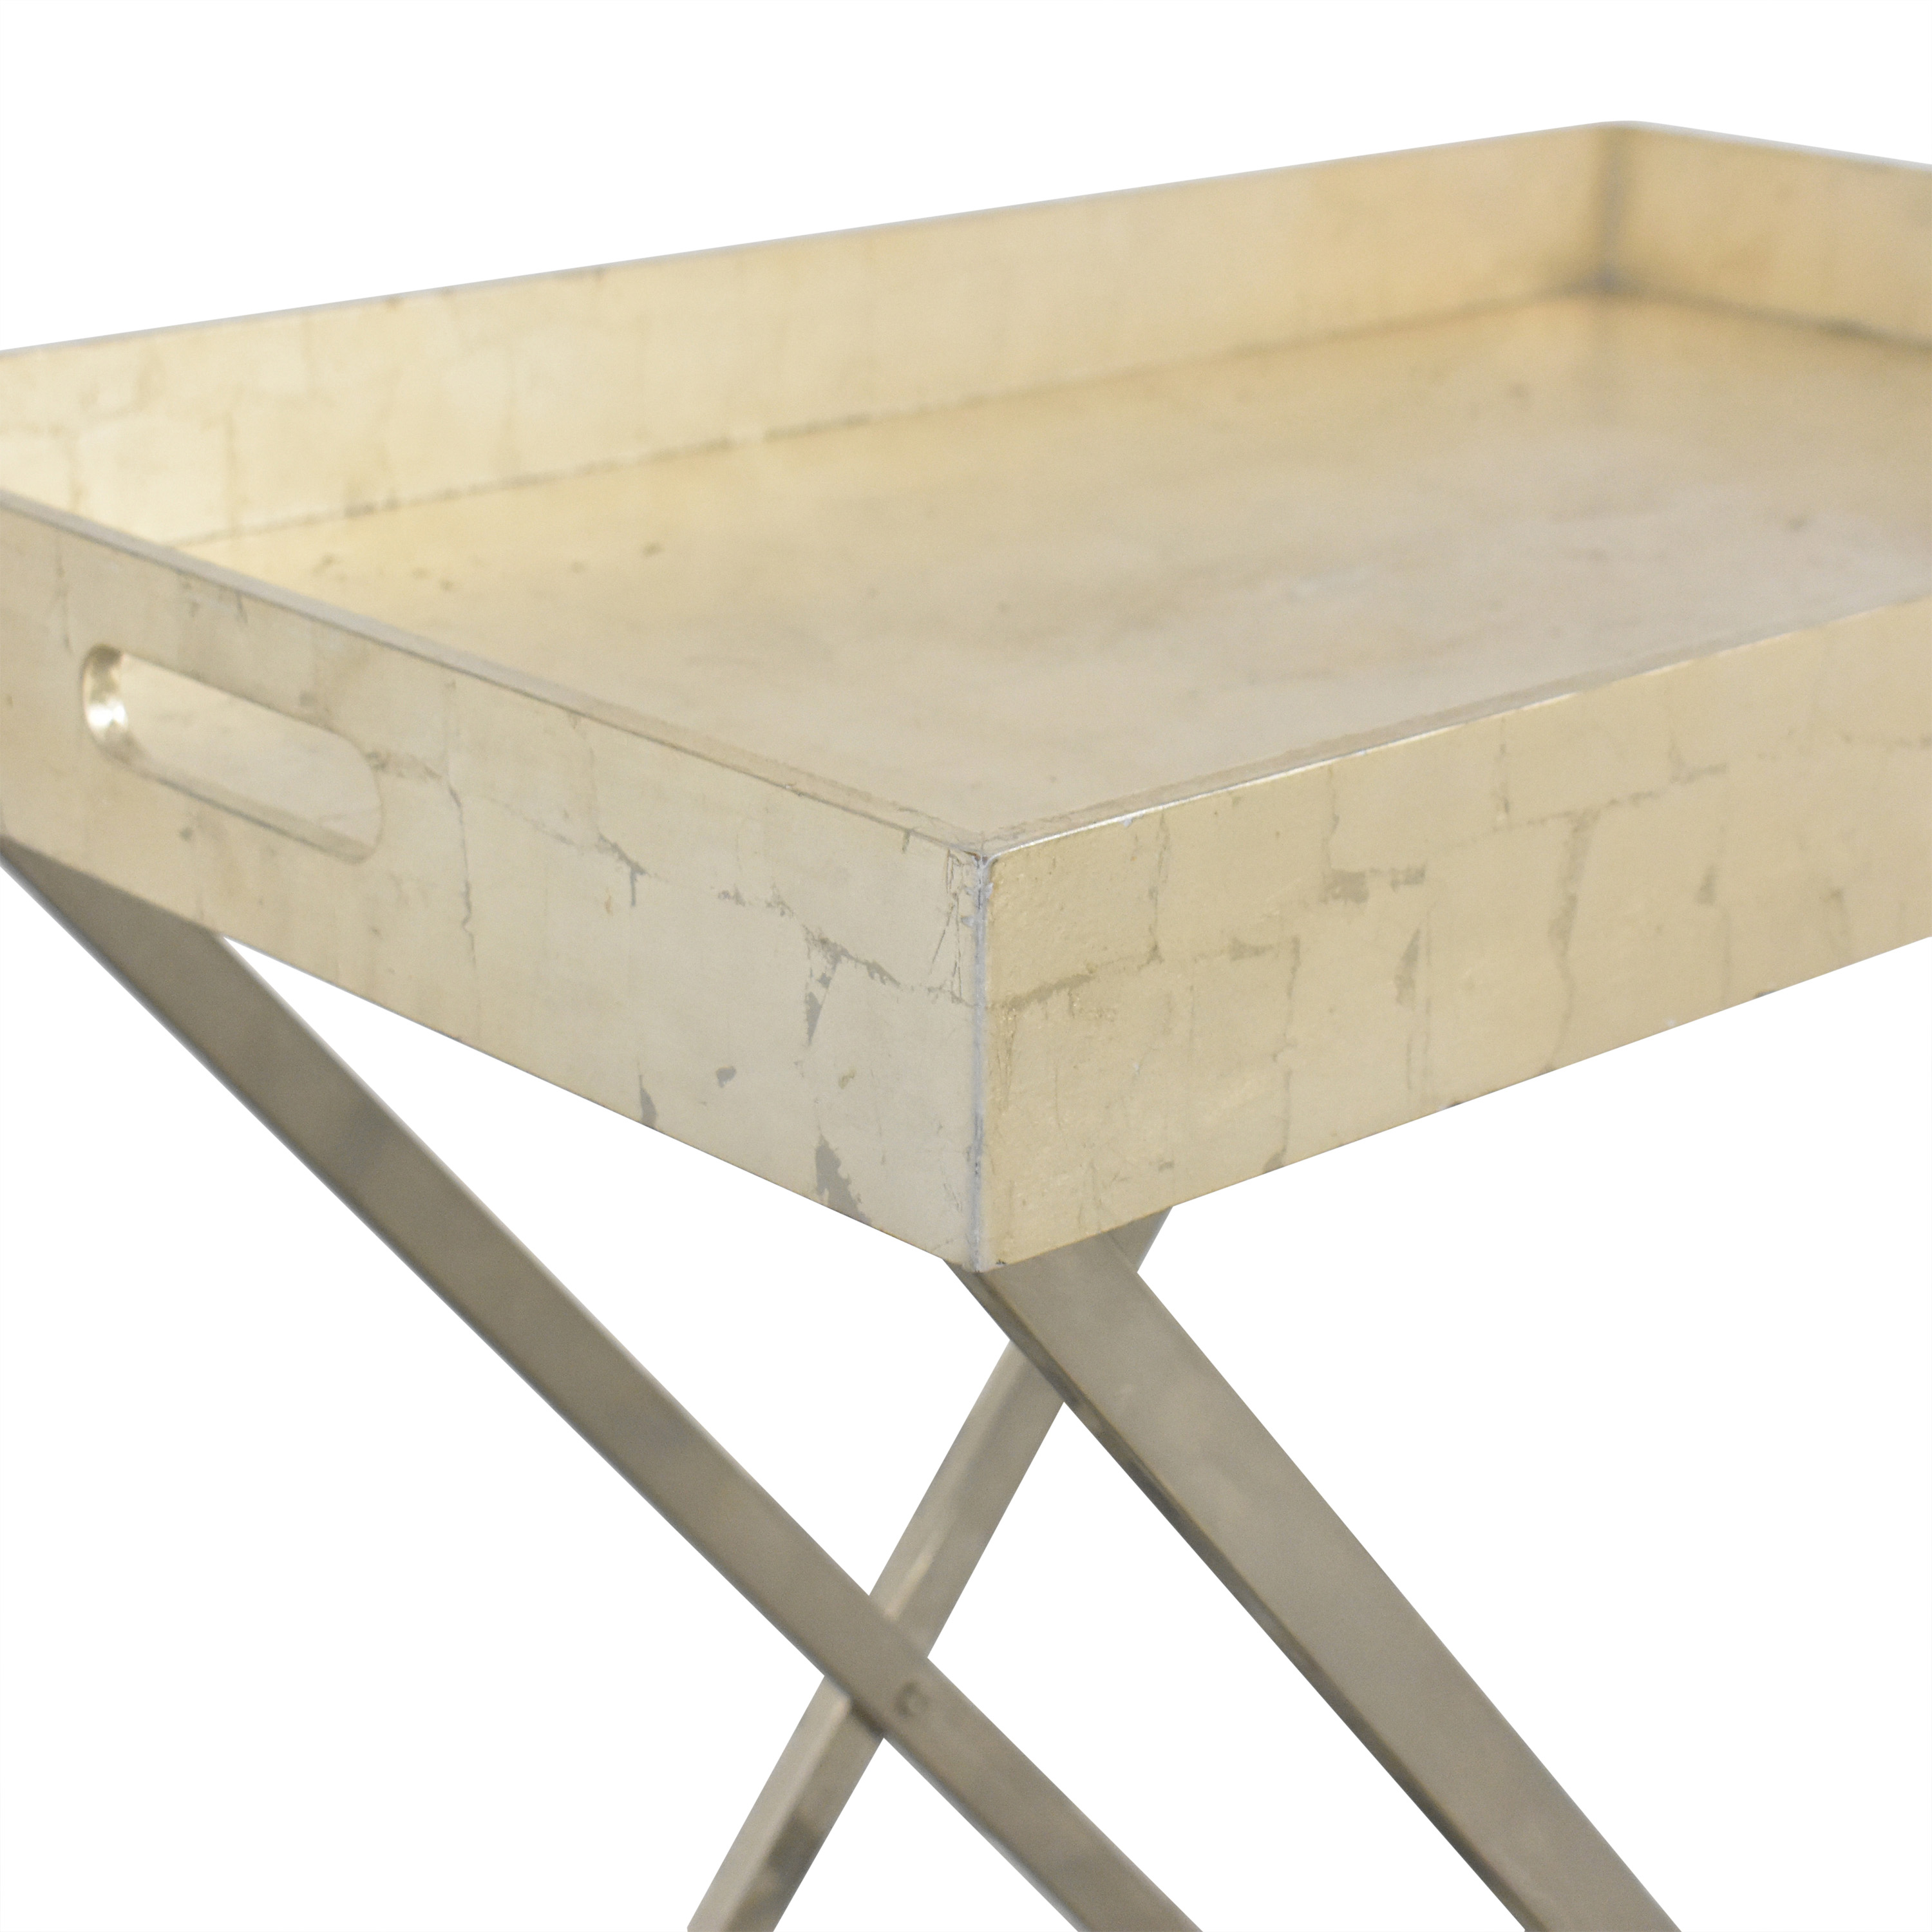 West Elm West Elm Butler Tray with Stand used